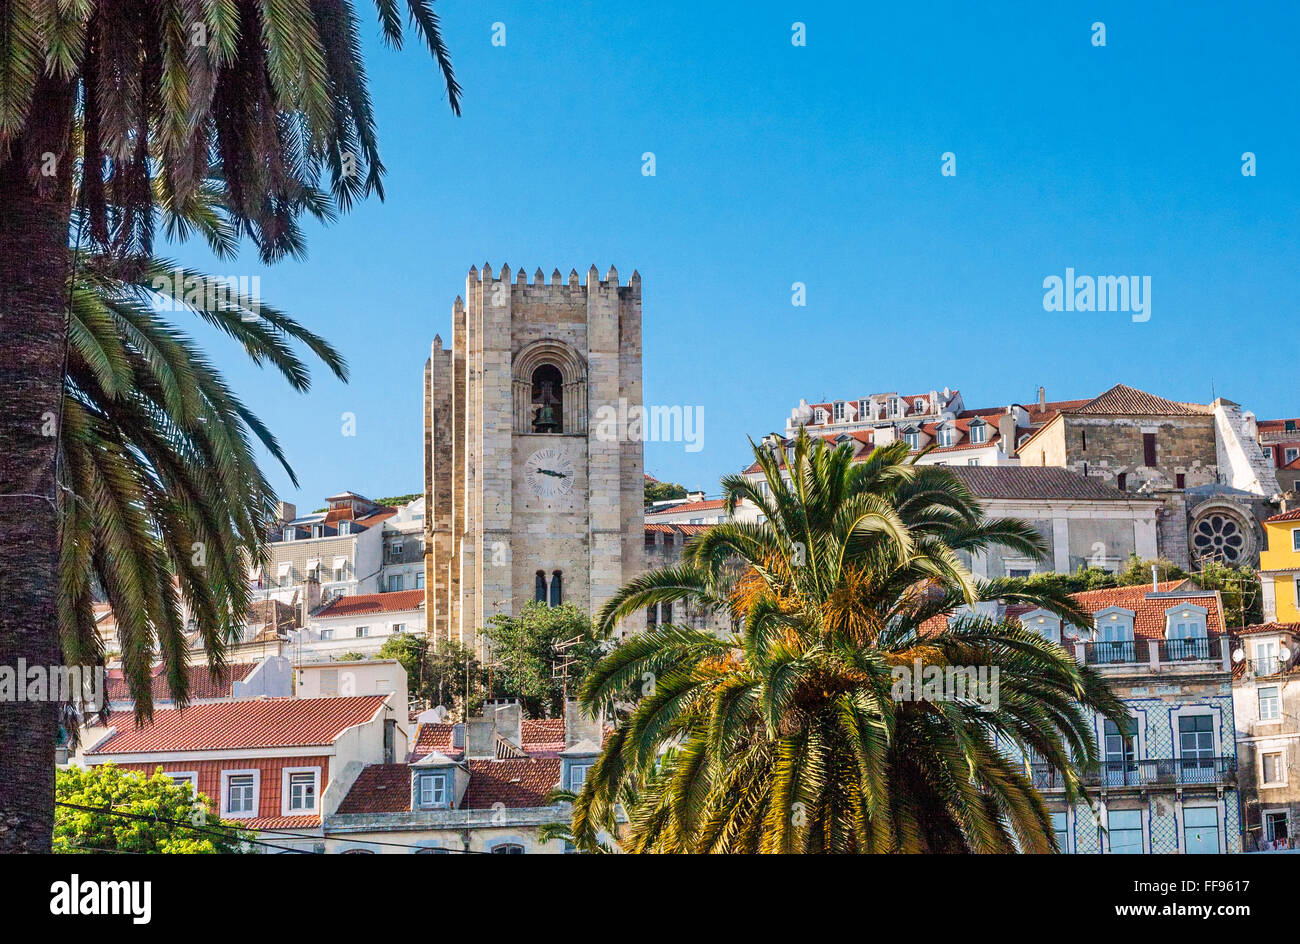 Portugal, Lisbon, view fortress like towers of Lisbon Cathedral dominating the Encosta da Se neighbourhood Stock Photo